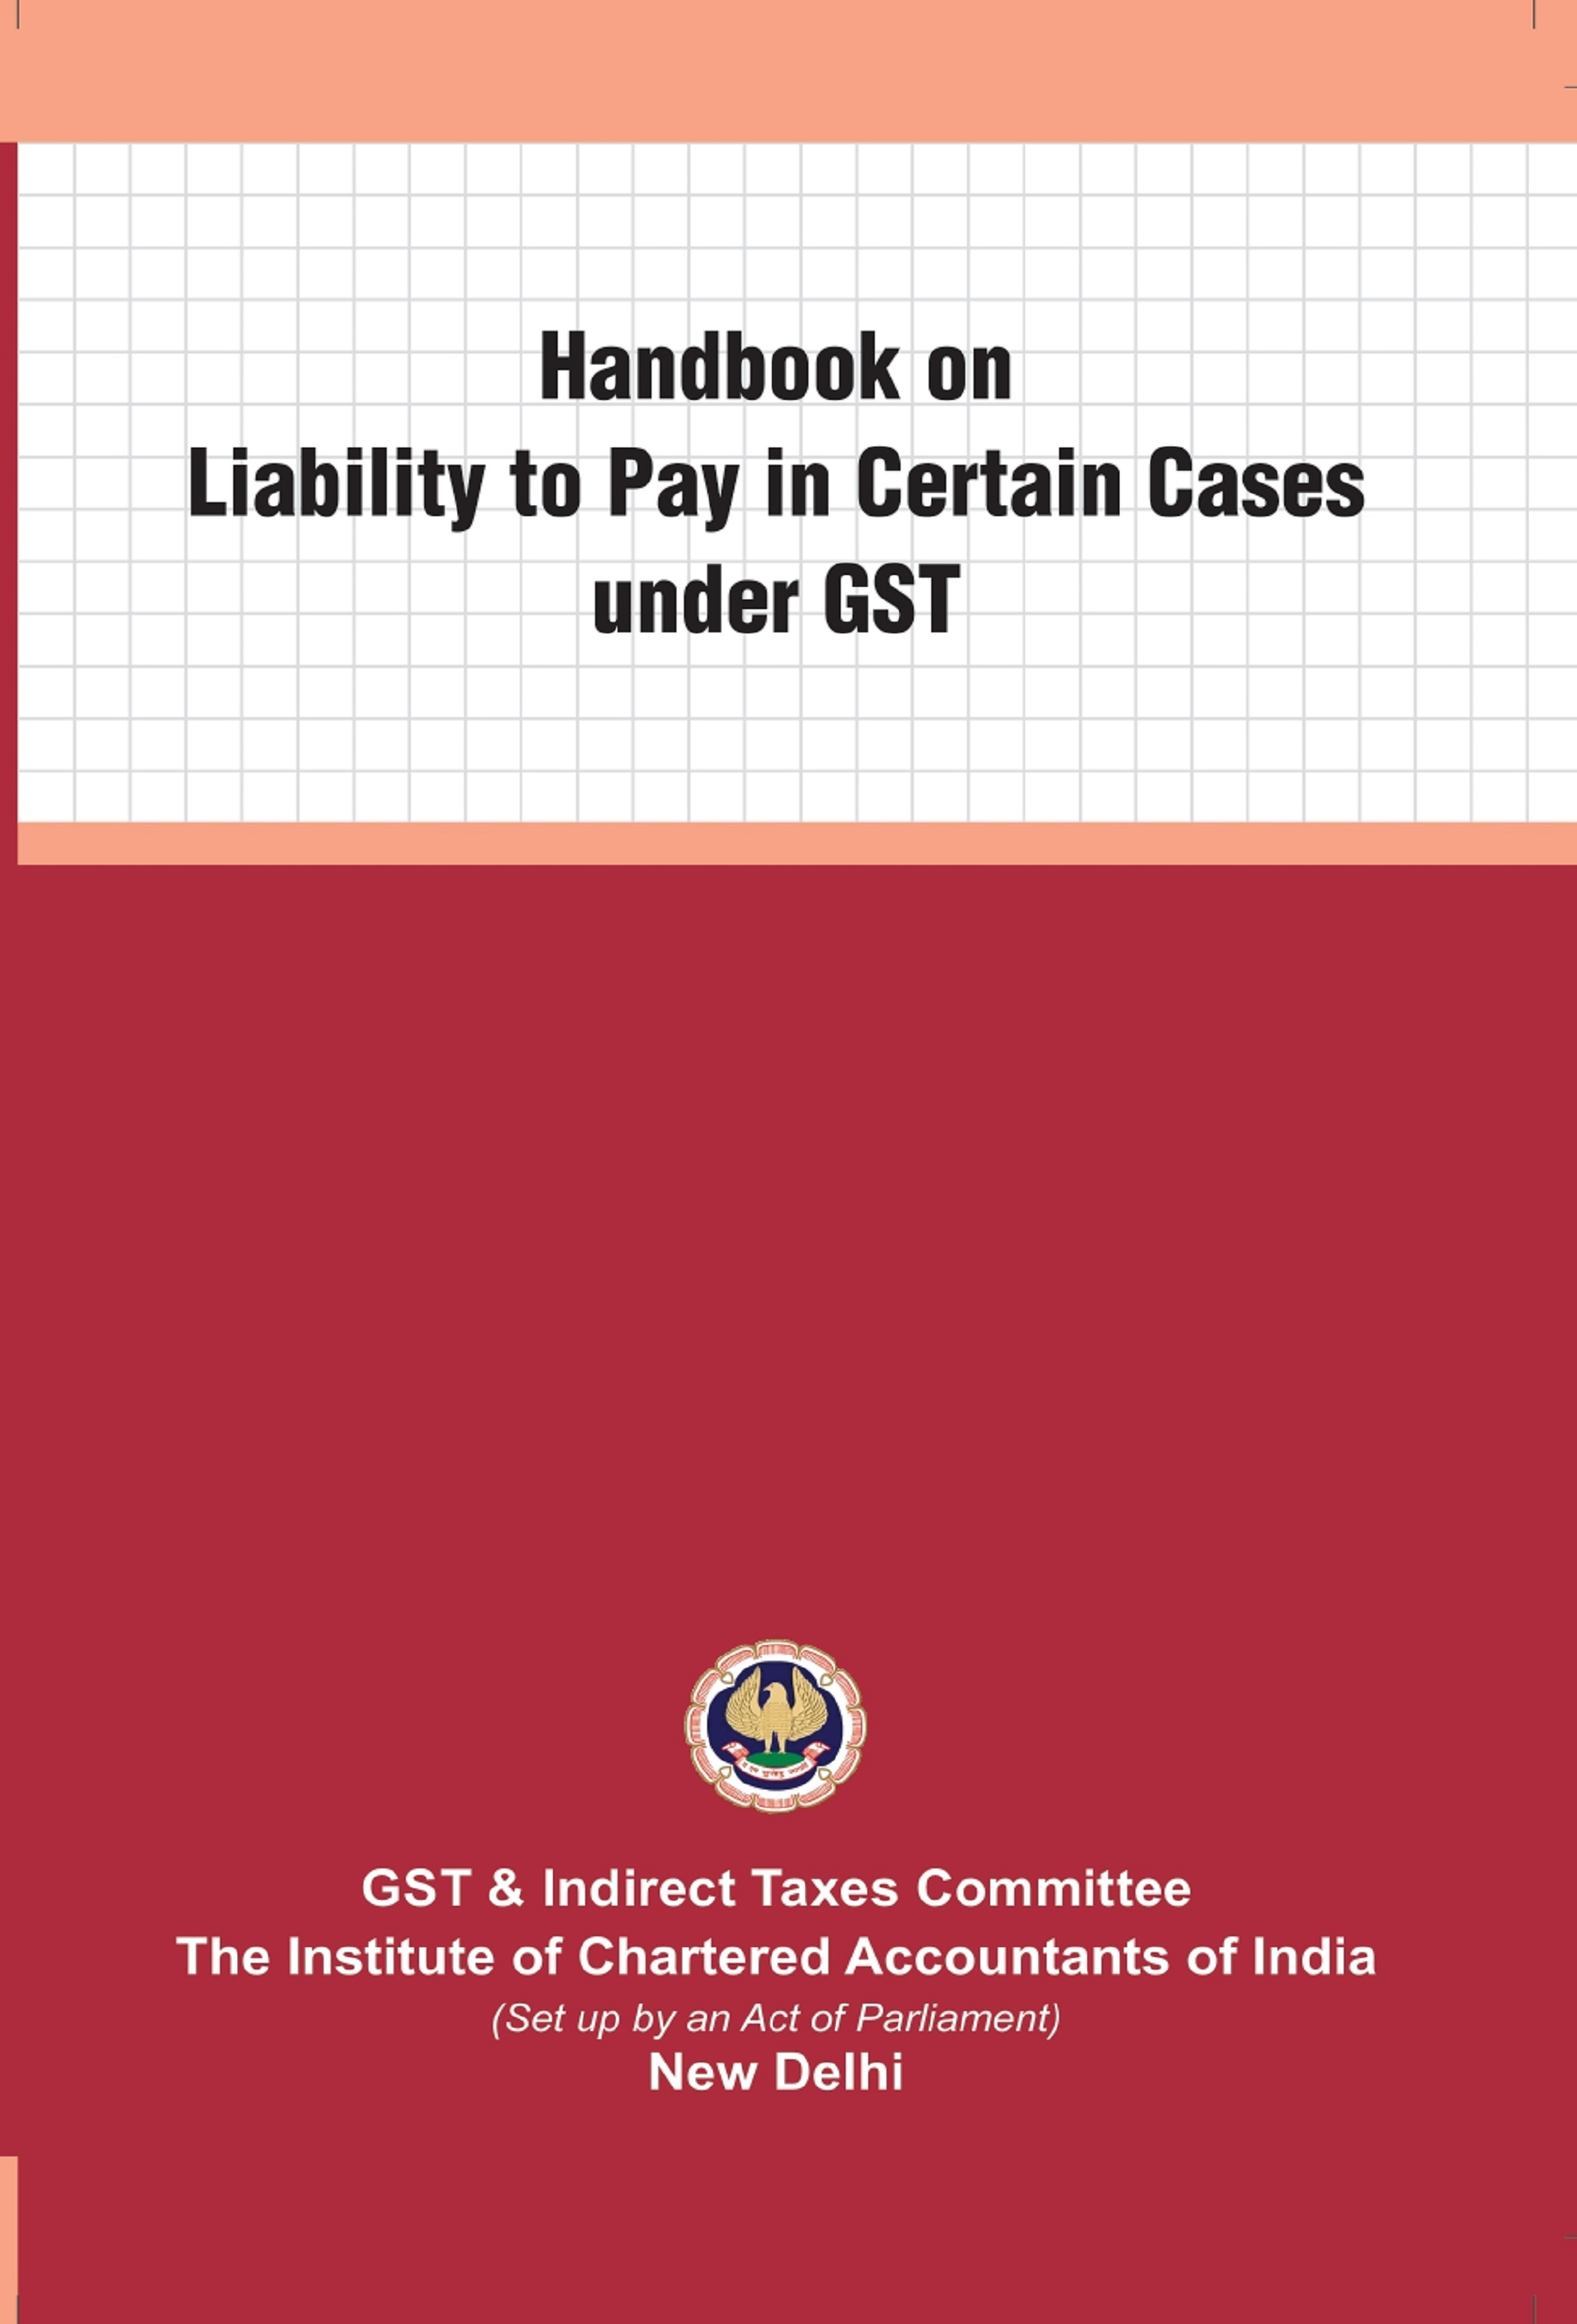 Handbook on Liability to Pay in Certain Cases under GST (November, 2020)